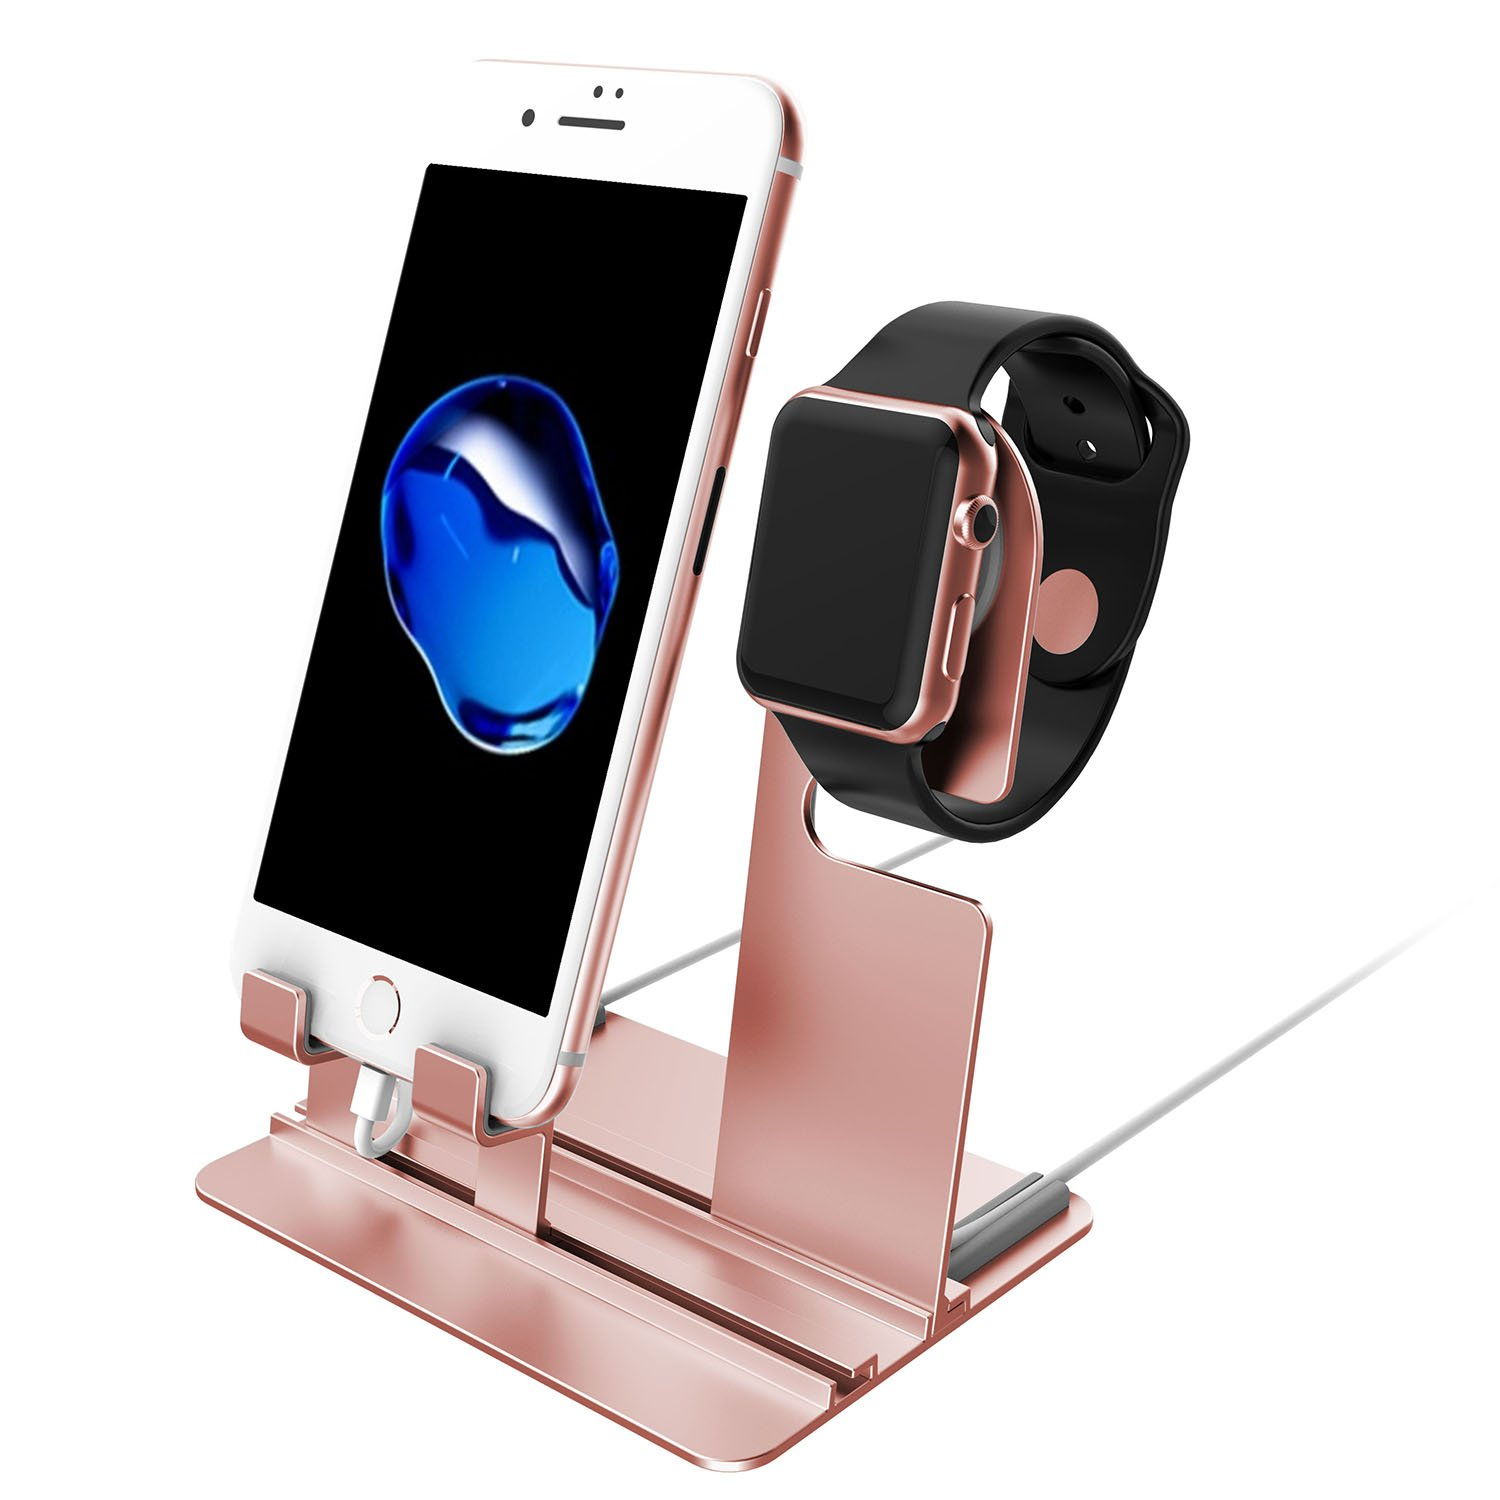 Apple Watch Stand, Apple Watch Charging Holder, Qiandy Smart Watch Charging Docks Station Charger Stand for Apple Watch Series 3/2/1/iPhone X/8/8Plus/7/7 Plus/6S/6S Plus/AirPods/iPad (Pink) by Qiandy (Image #1)